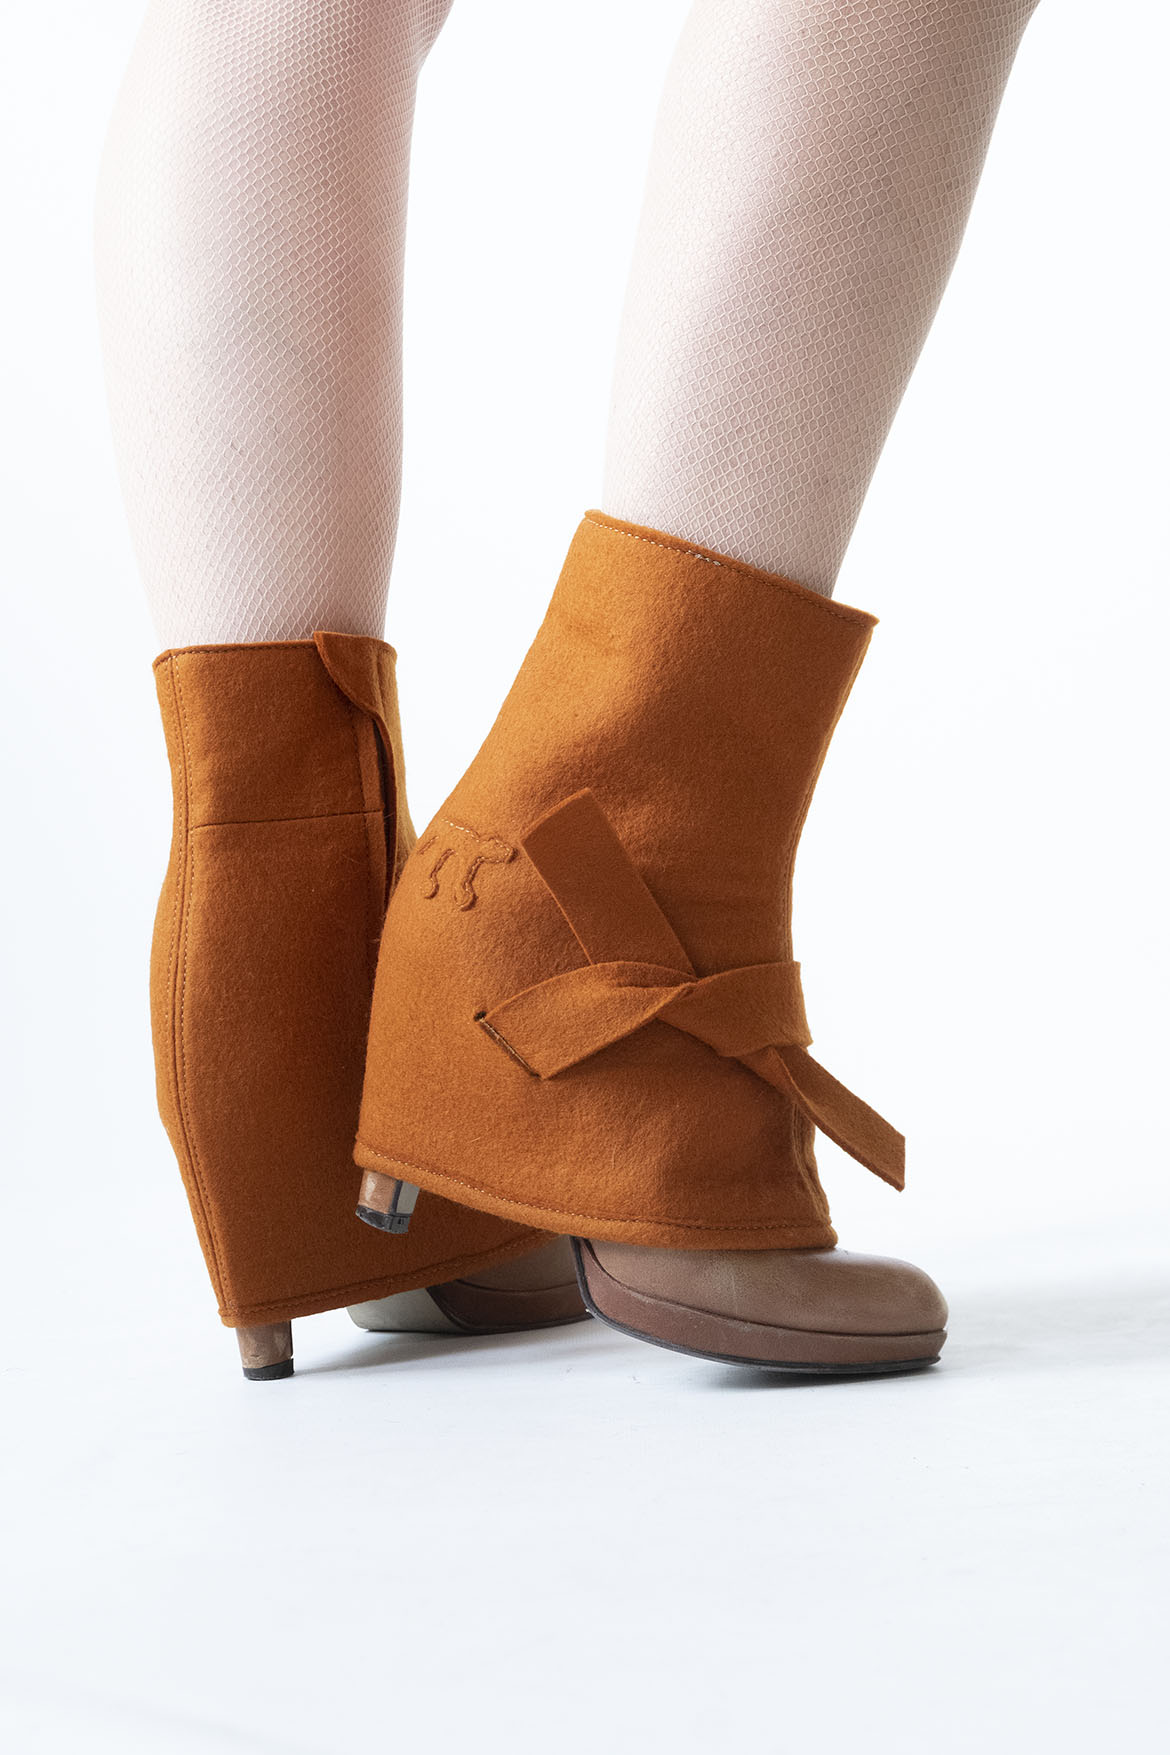 ankle-high edie | colors